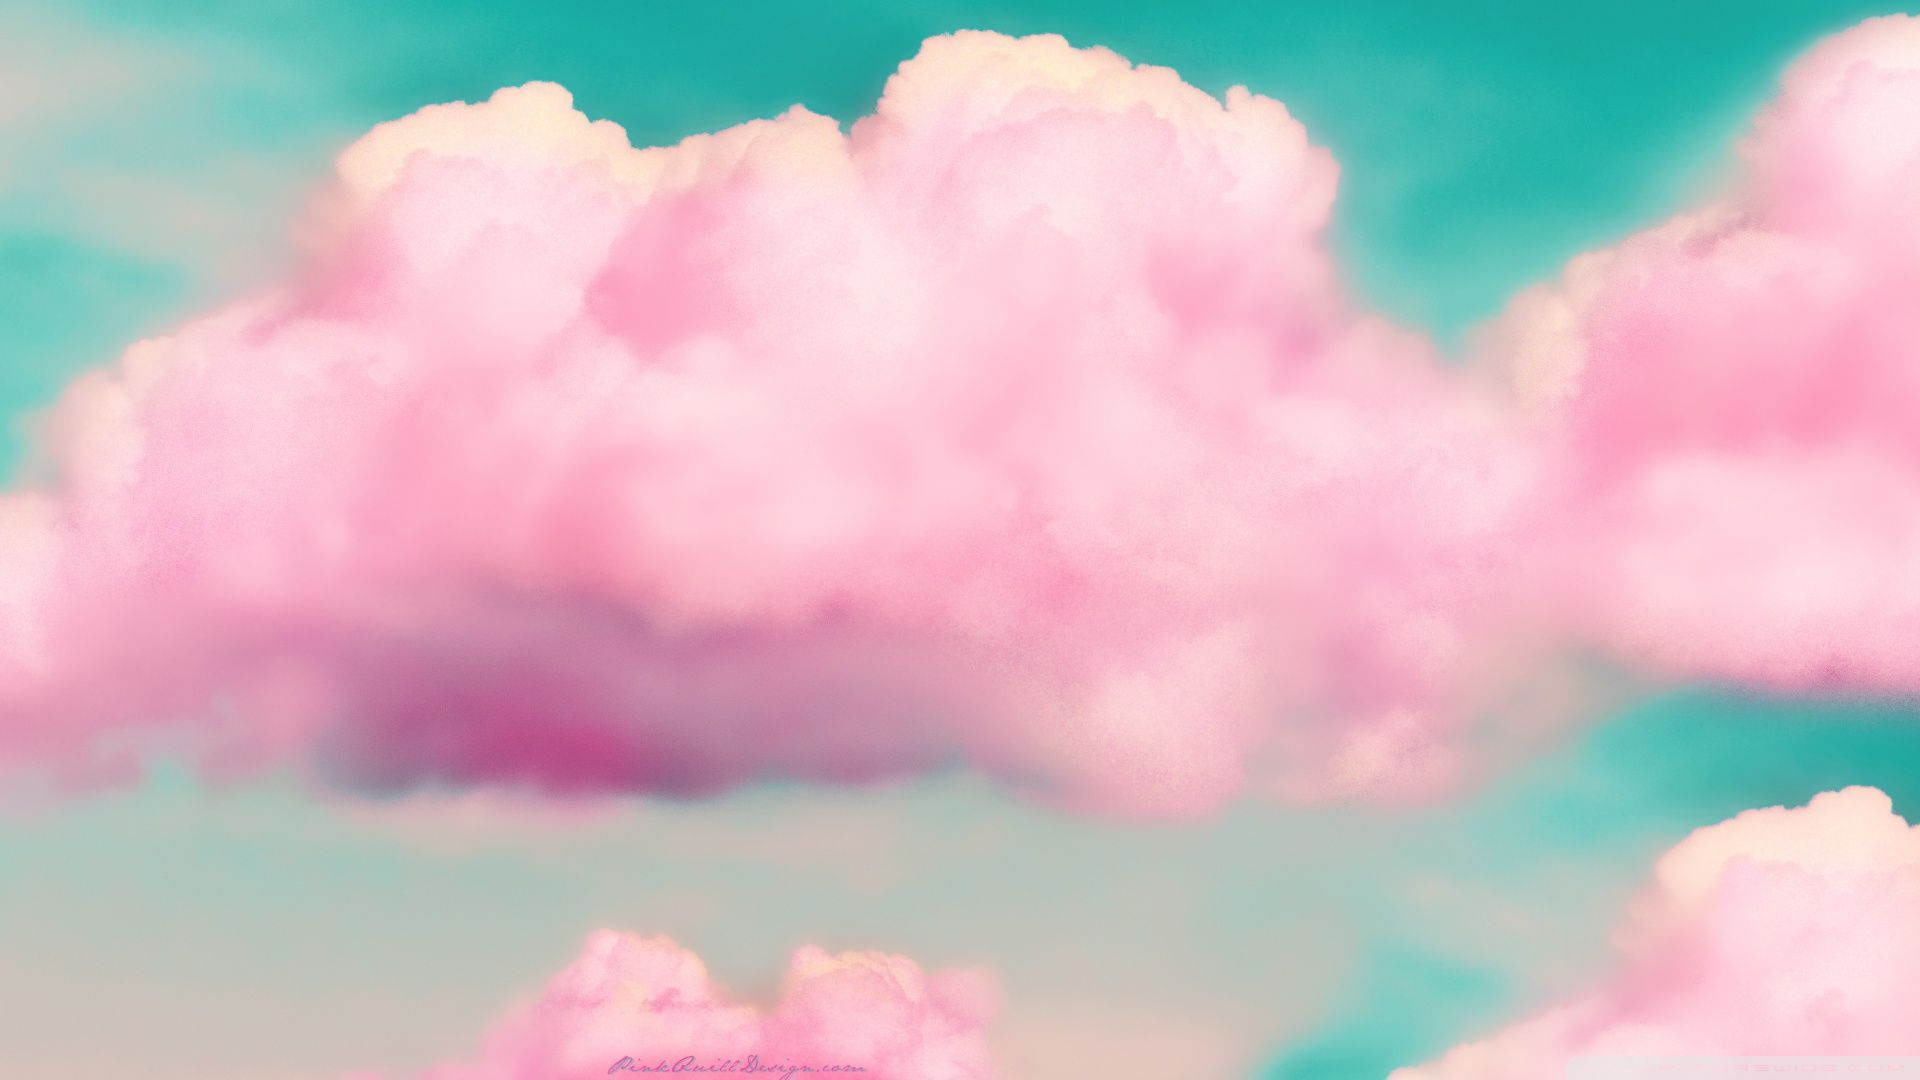 Pastel Pink Aesthetic Pc Wallpapers On Wallpaperdog In 2020 Pink Clouds Wallpaper Cloud Wallpaper Cute Wallpapers For Ipad